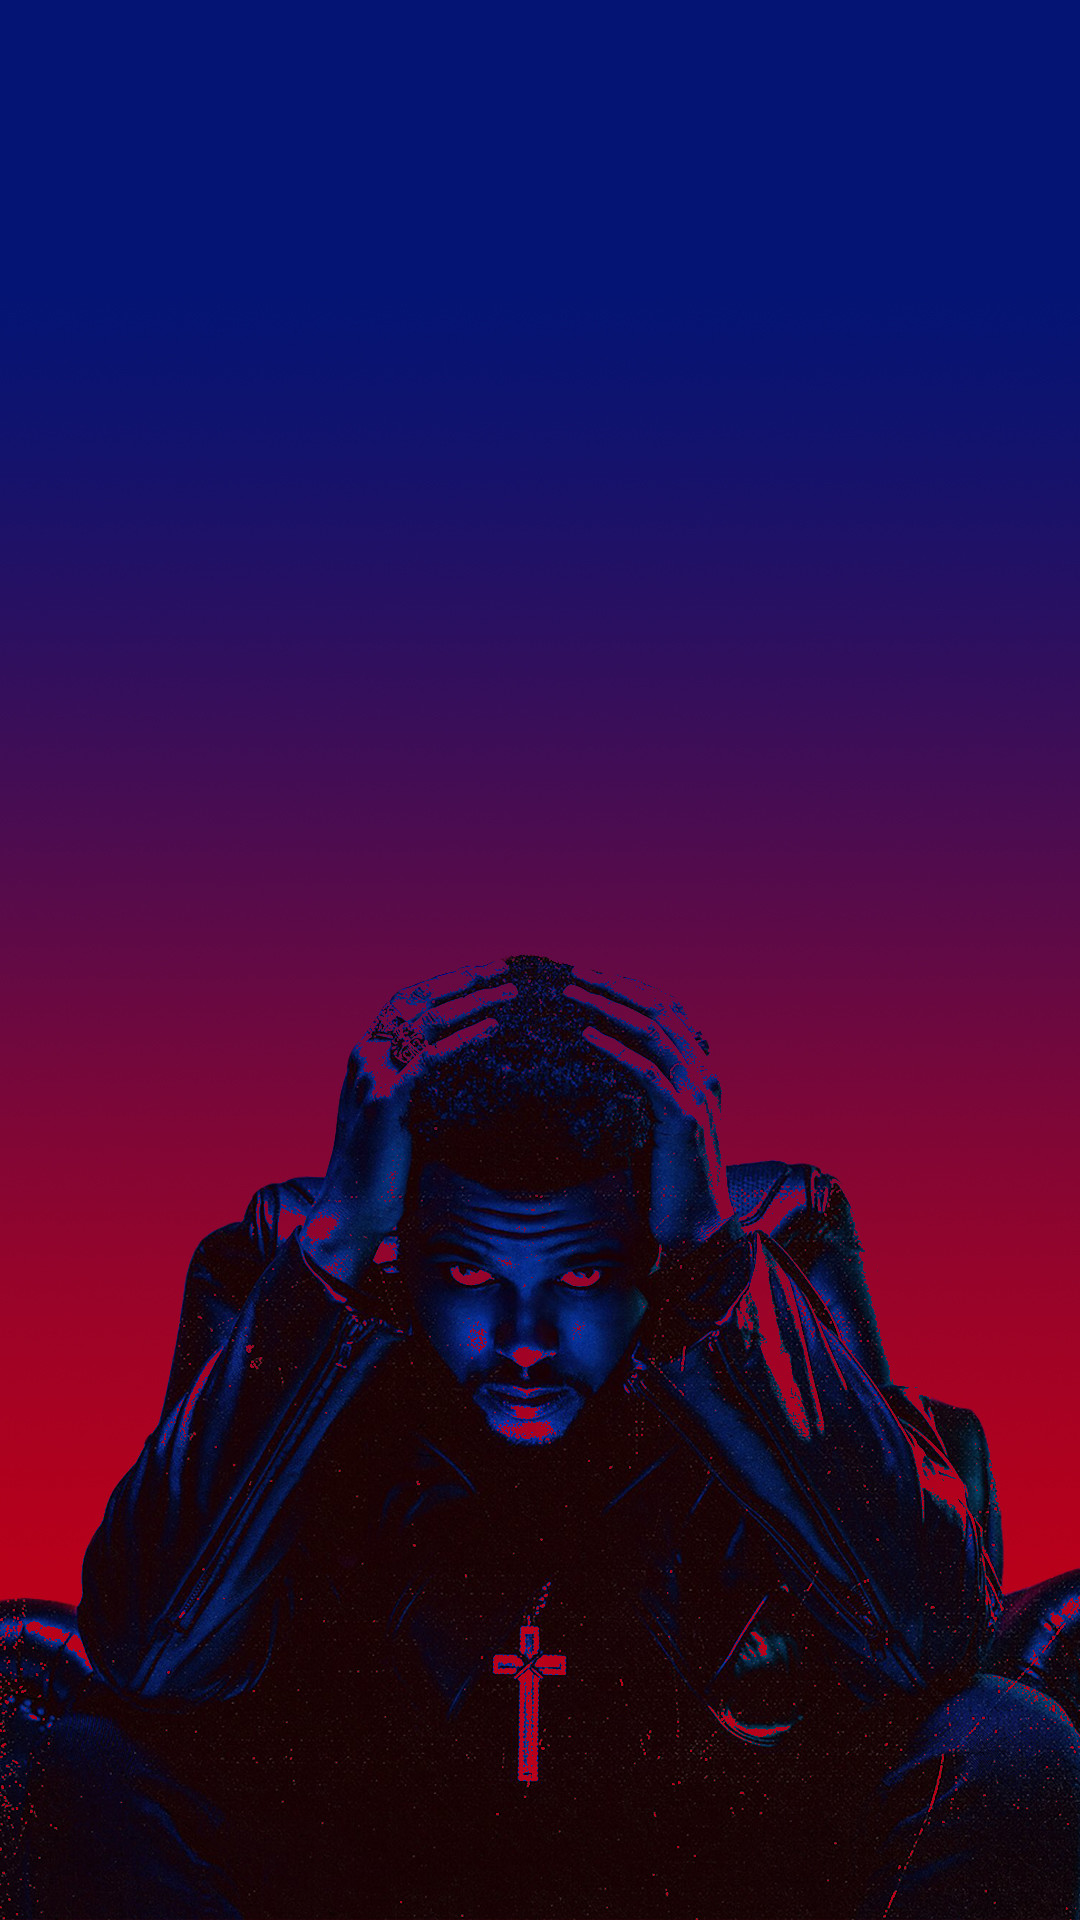 1080x1920 Starboy Custom iPhone 6 Plus Wallpaper by Trackos. Iphone BackgroundsWallpaper  BackgroundsThe Weeknd ...